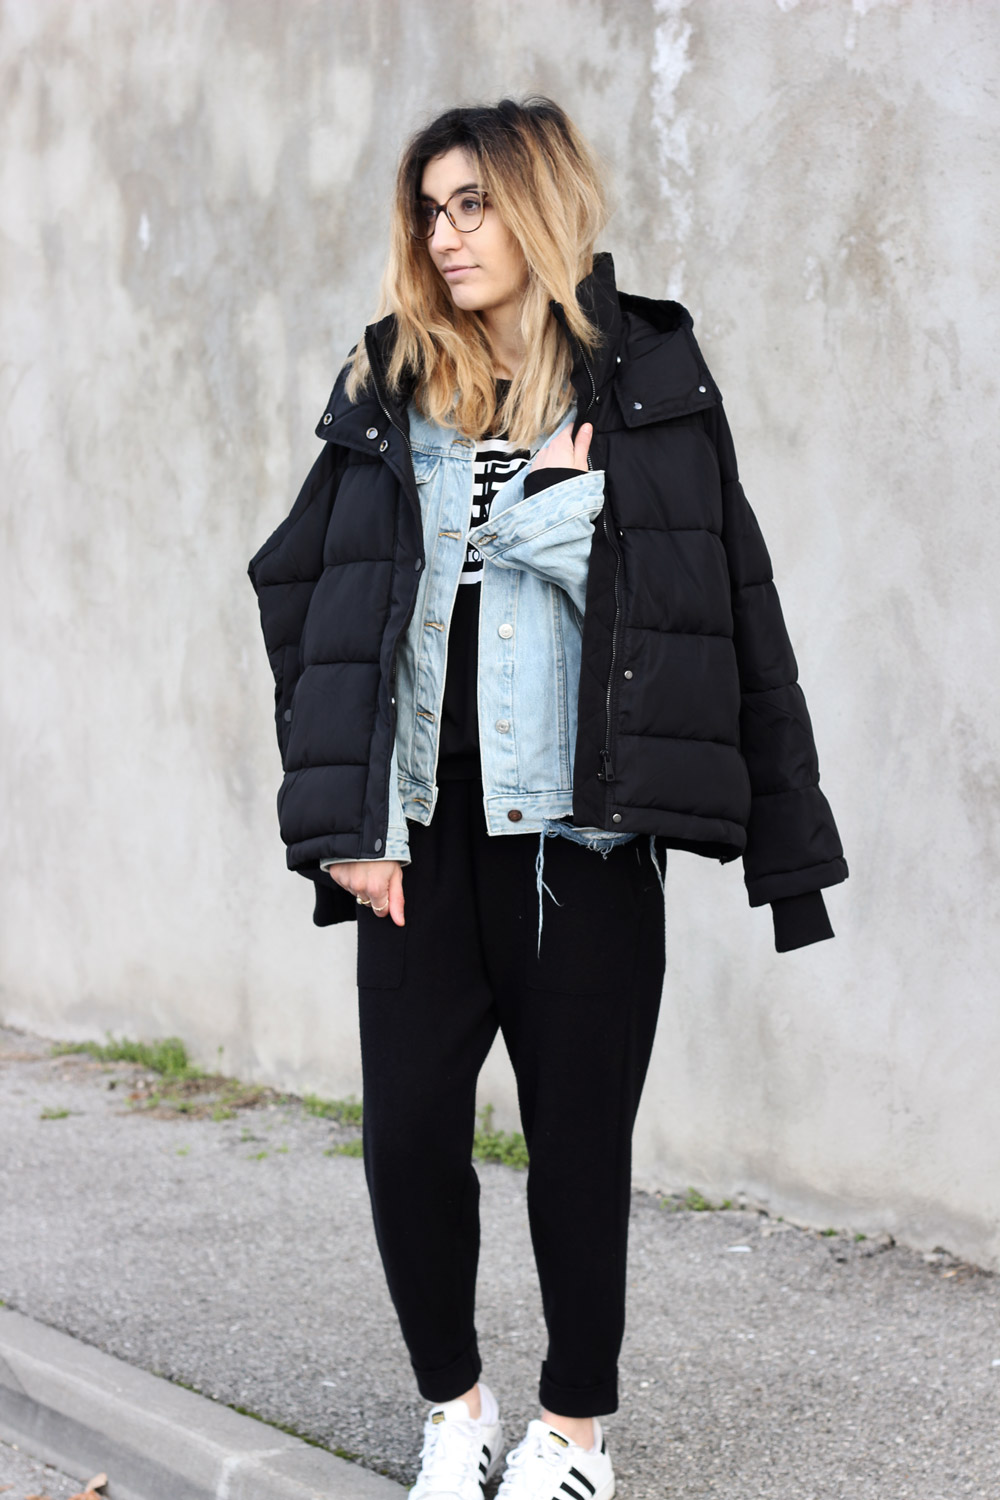 blog-mode-layering-doudoune-sweat-veste-jean